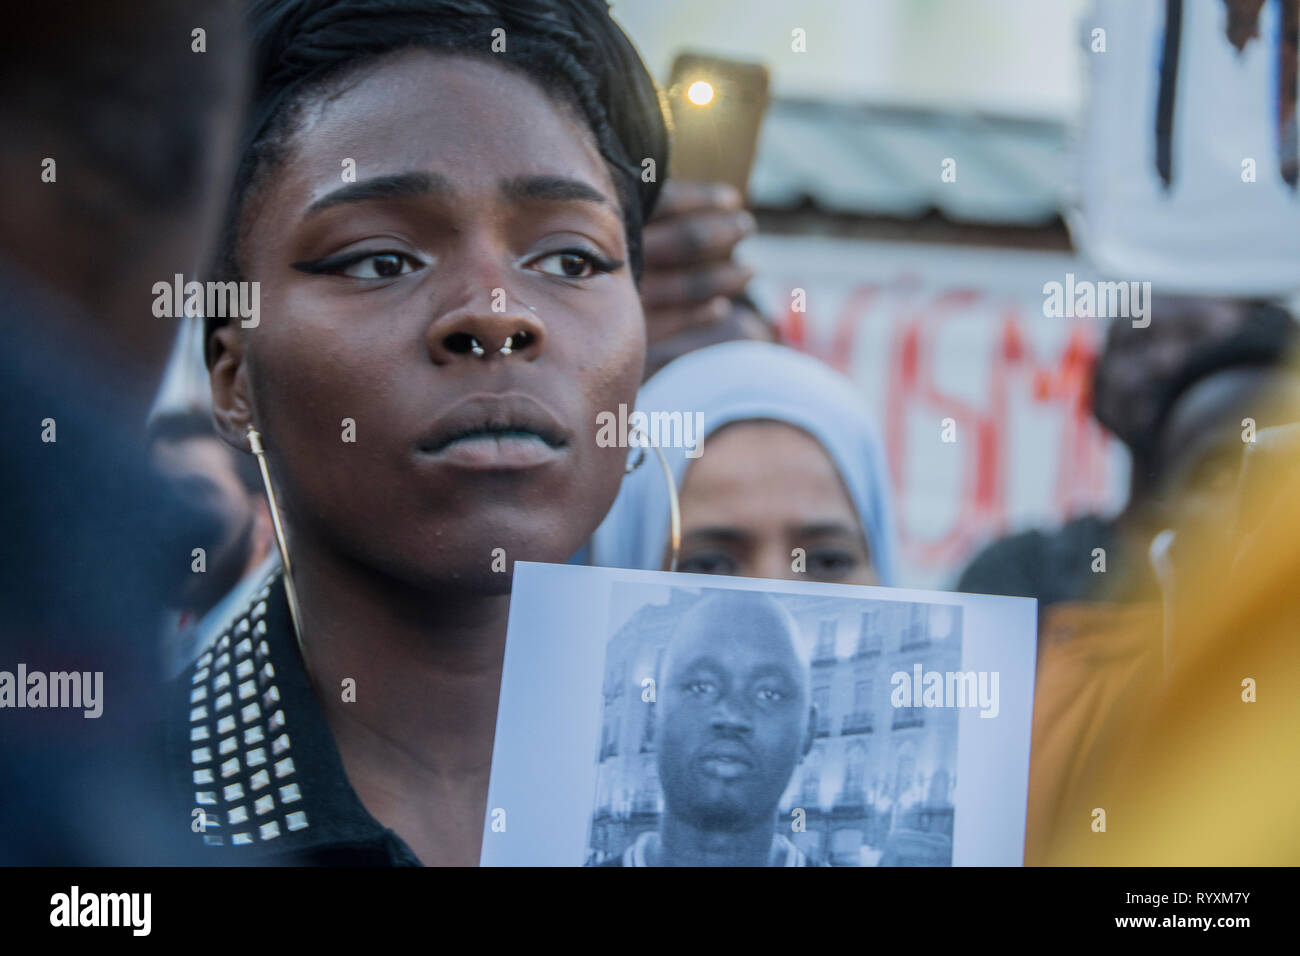 Madrid, Spain. 15th Mar 2019. March to commemorate one year of the death of senegalese vendor Mmame Mbage in Lavapies Square Nelson Mandela. one year ago there was a clashes between police and immigrants after Mmame Mbage, a Senegalese street vendor, died of a cardiac arrest allegedly after being chased by local police. Credit: Alberto Sibaja Ramírez/Alamy Live News - Stock Image